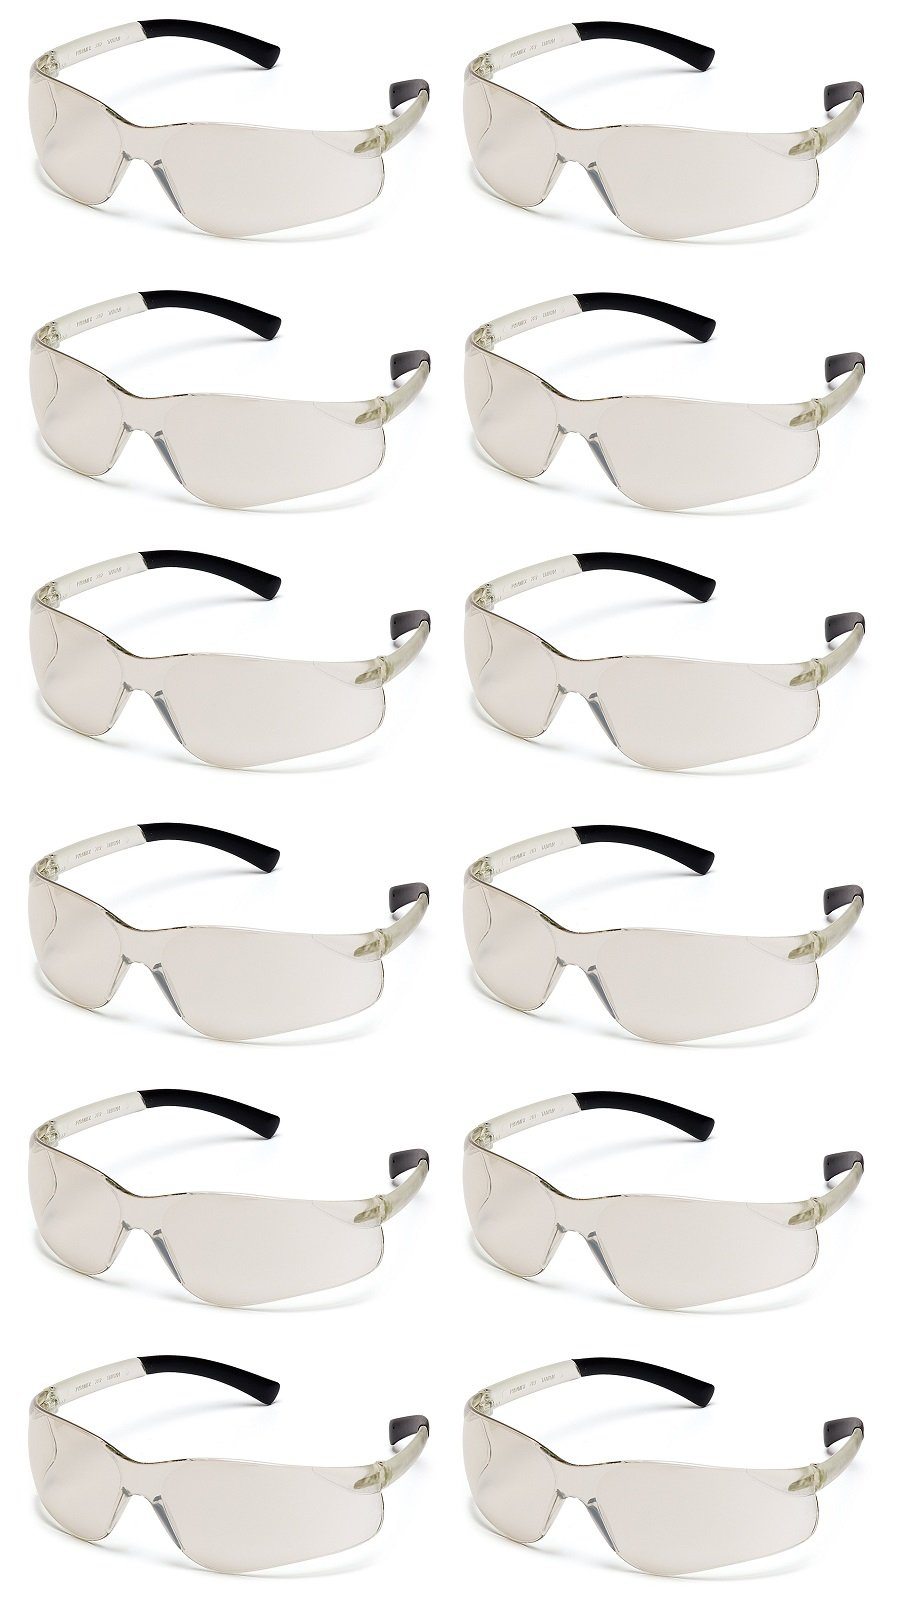 Safety Glasses,Clr/ I/O Mirror (Pack of 12)